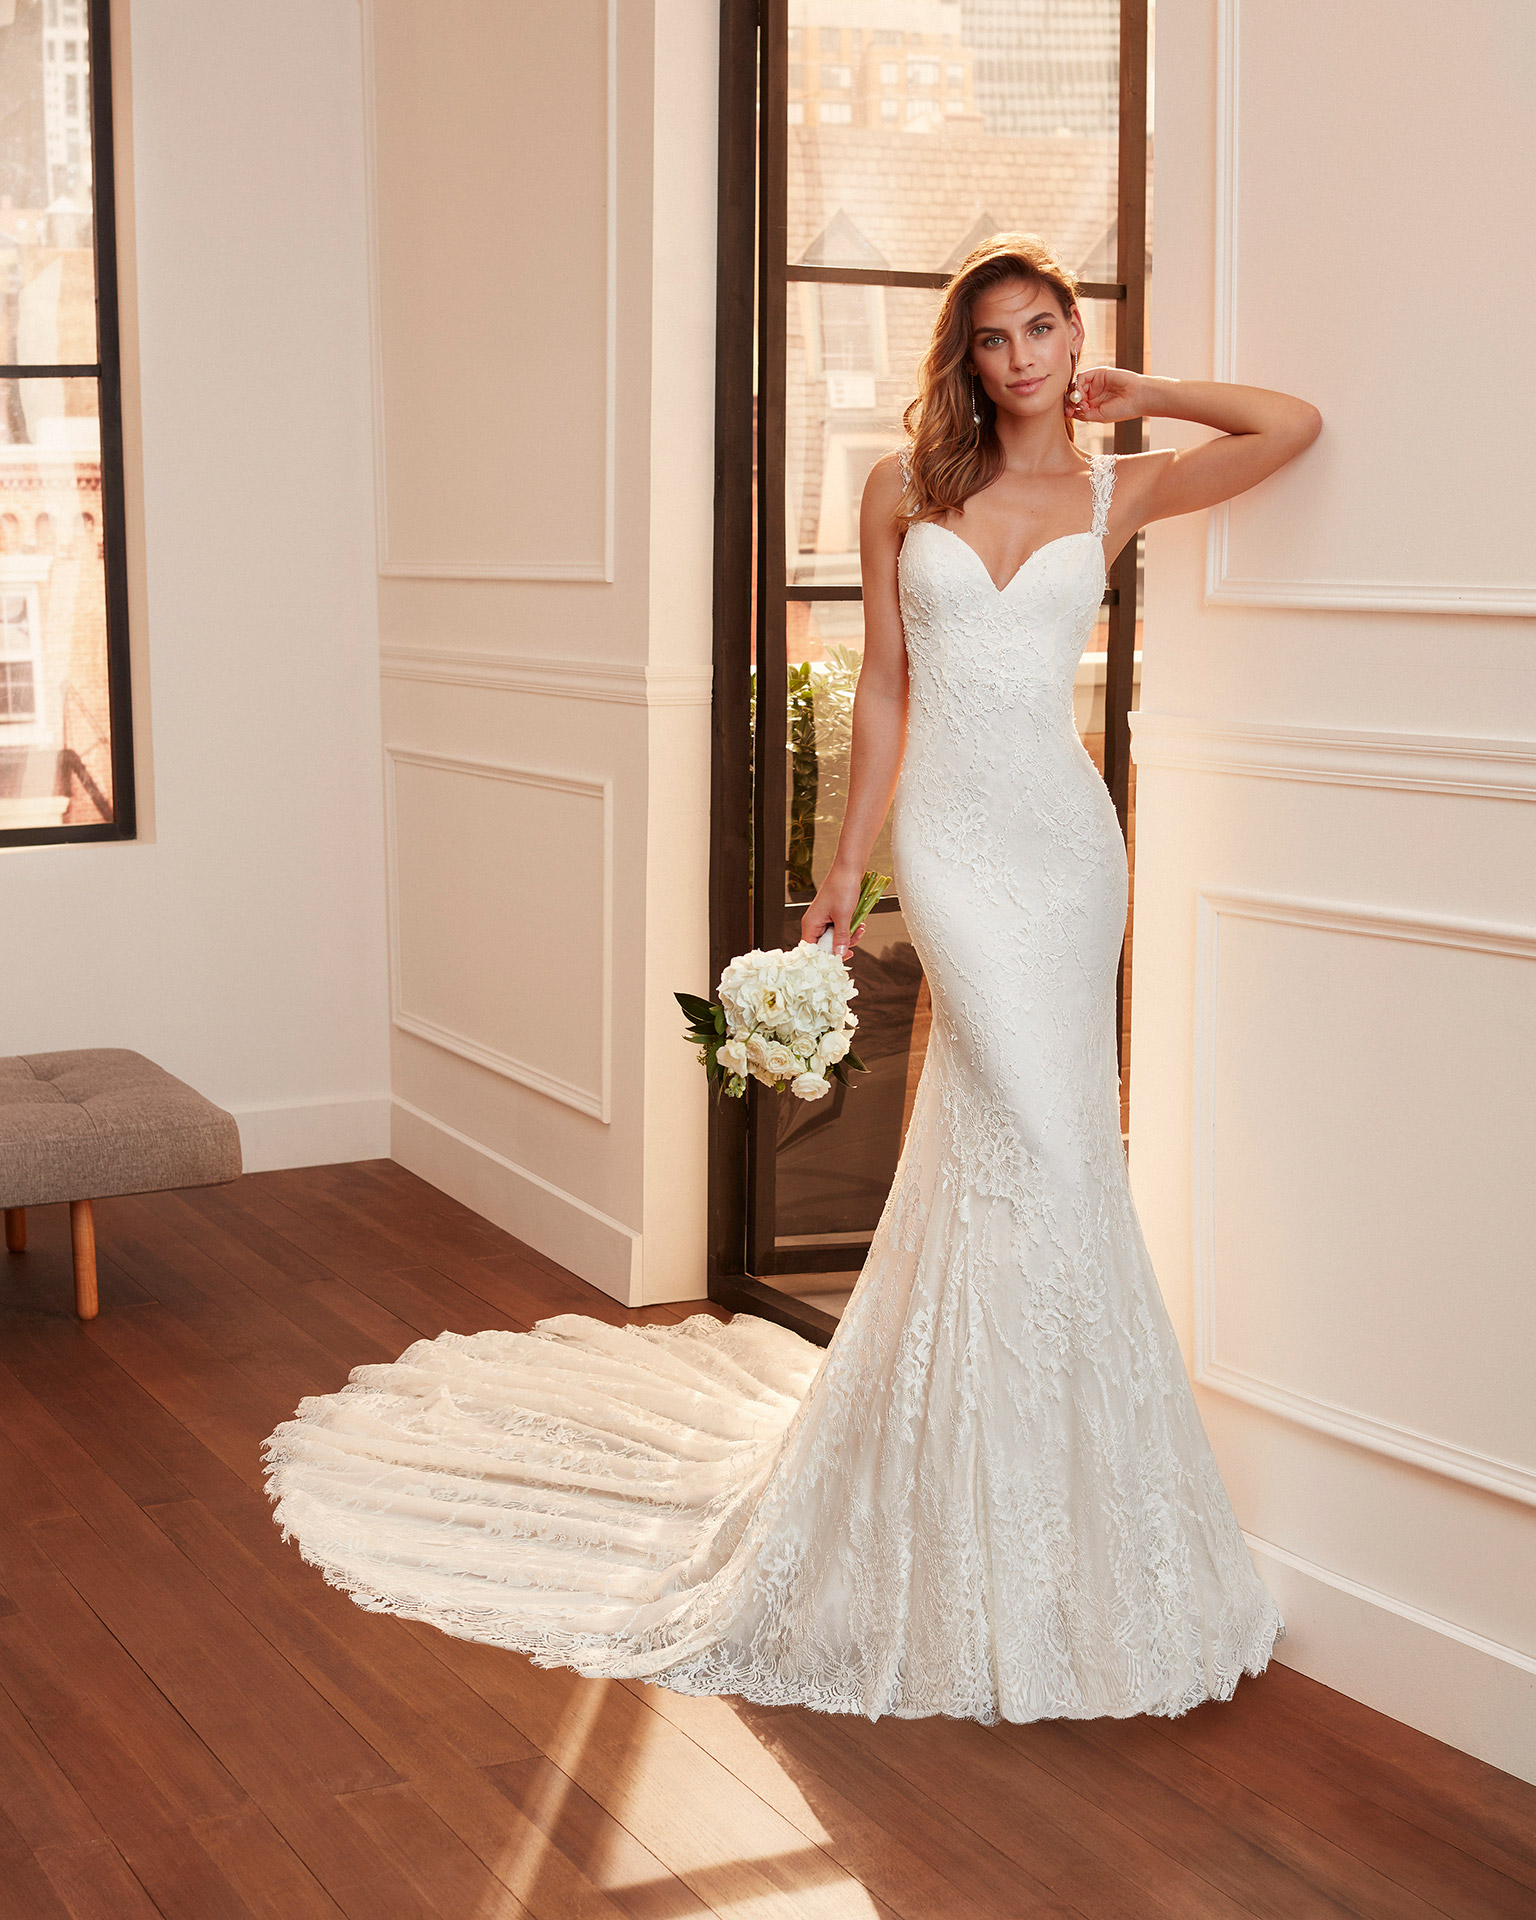 Mermaid-style wedding dress in lace and tulle with beading, sweetheart neckline and round back. 2020  Collection.